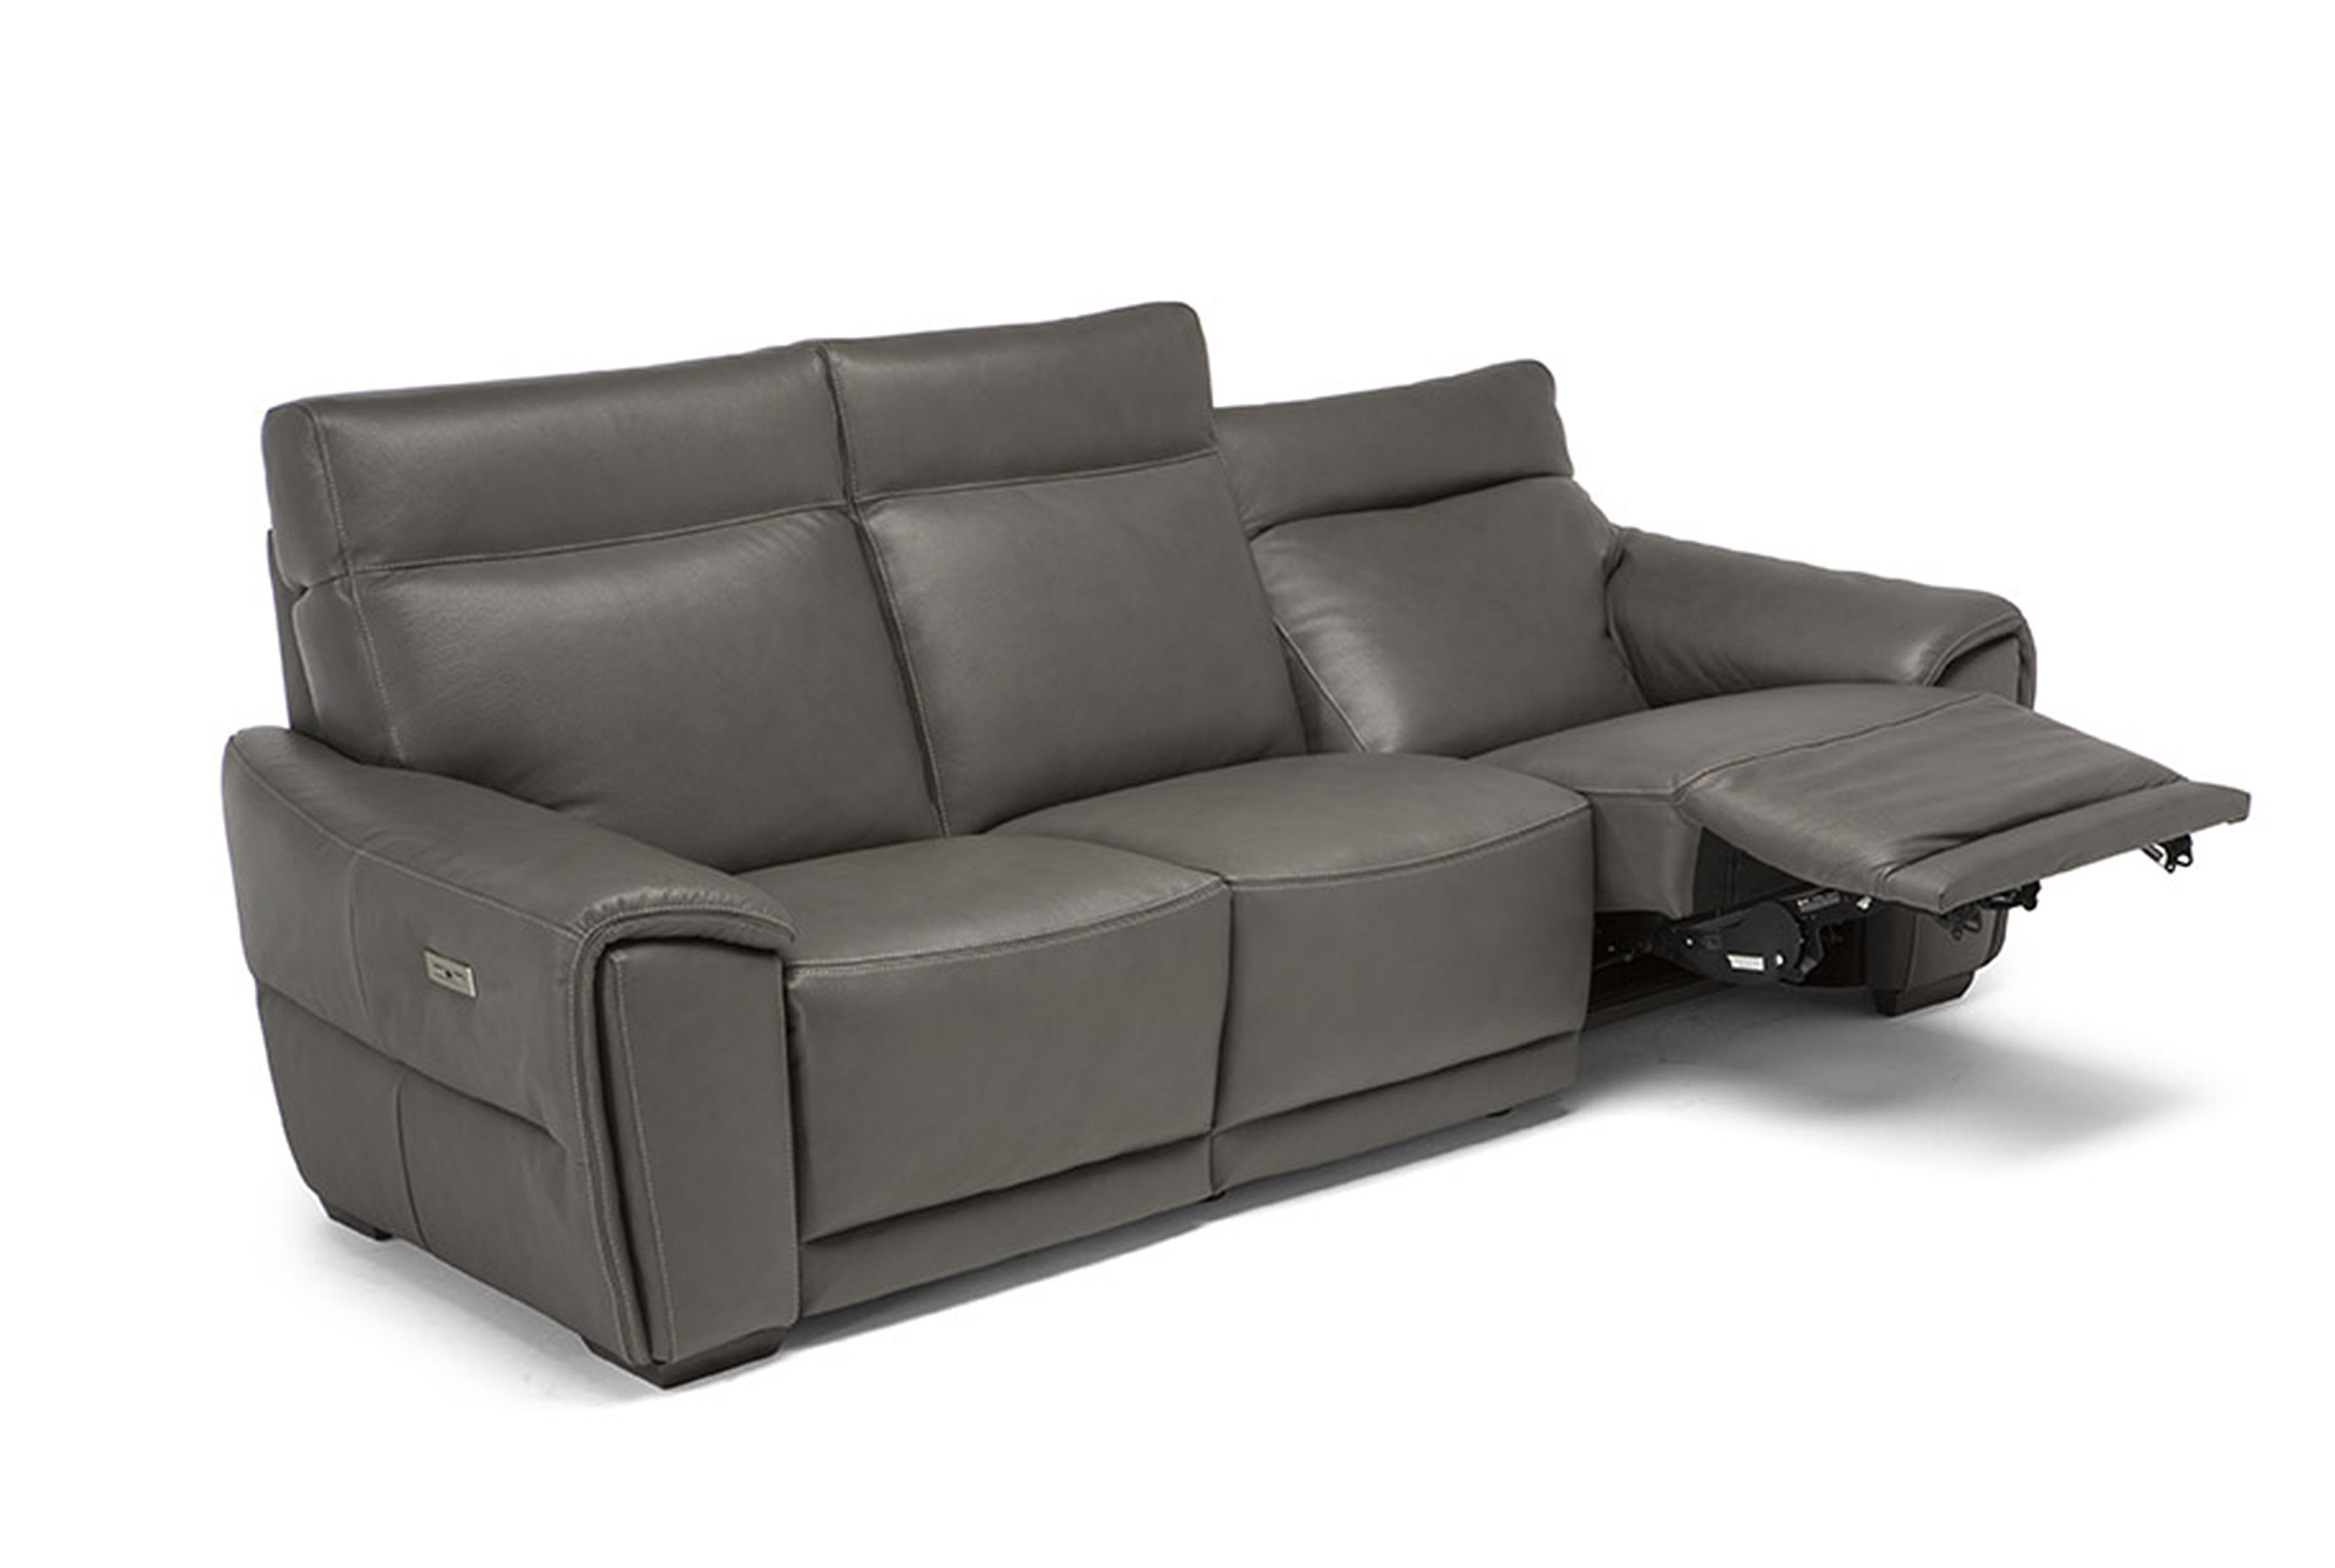 Focus On Furniture Sofa Bed Rispetto C048 100 Top Grain Leather Sofas And Sectionals